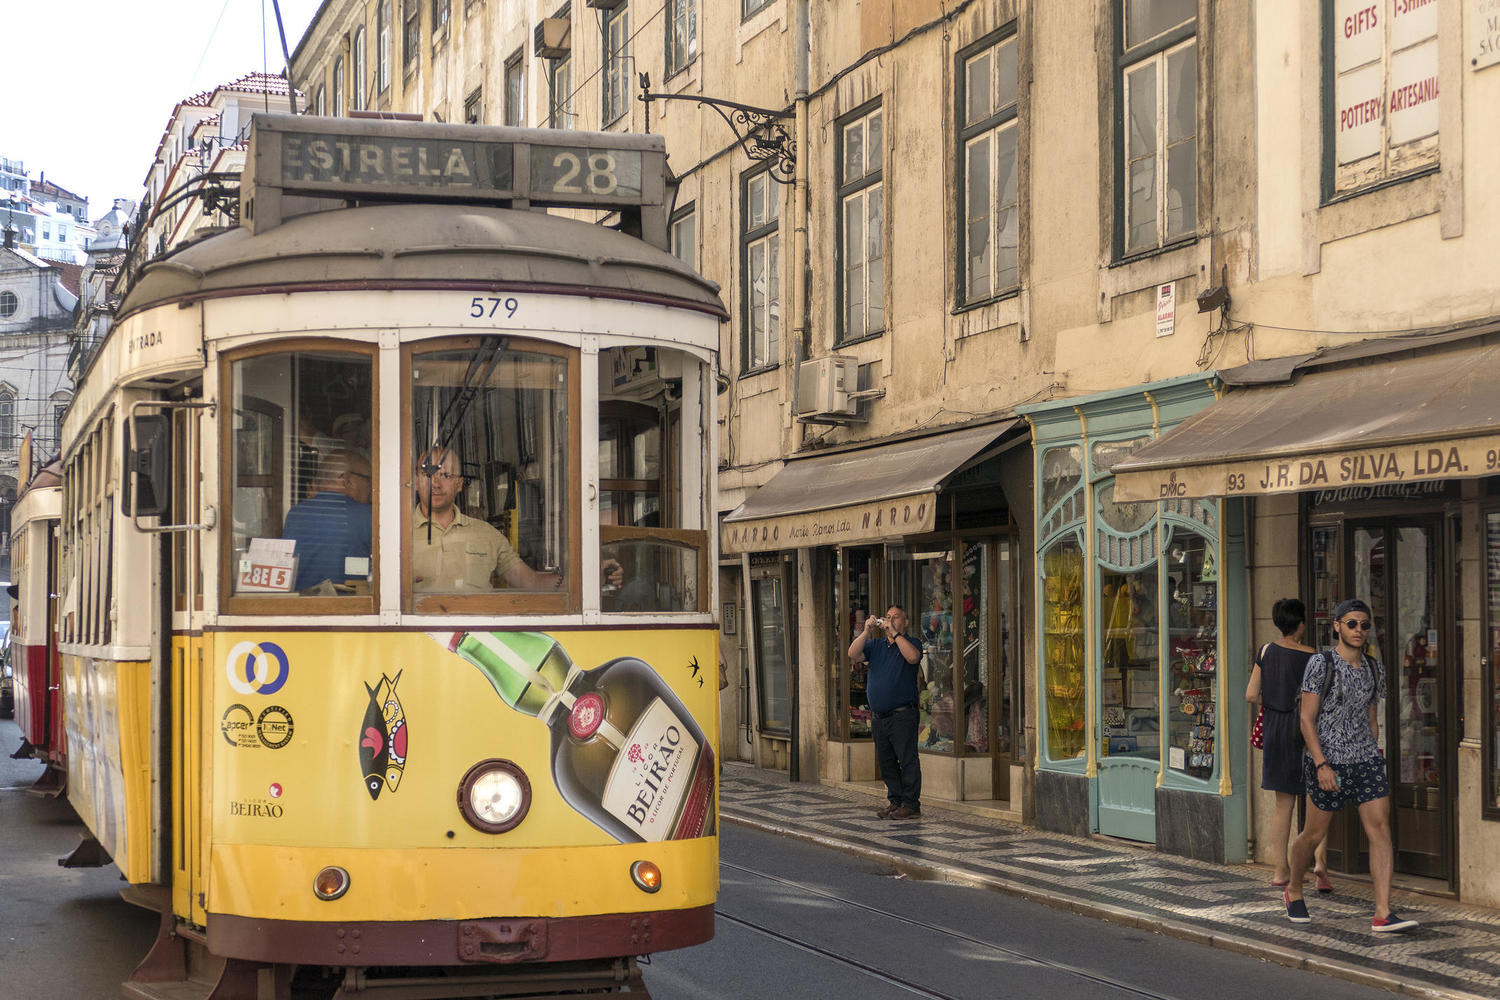 Trams ply the streets of Portugal's capital